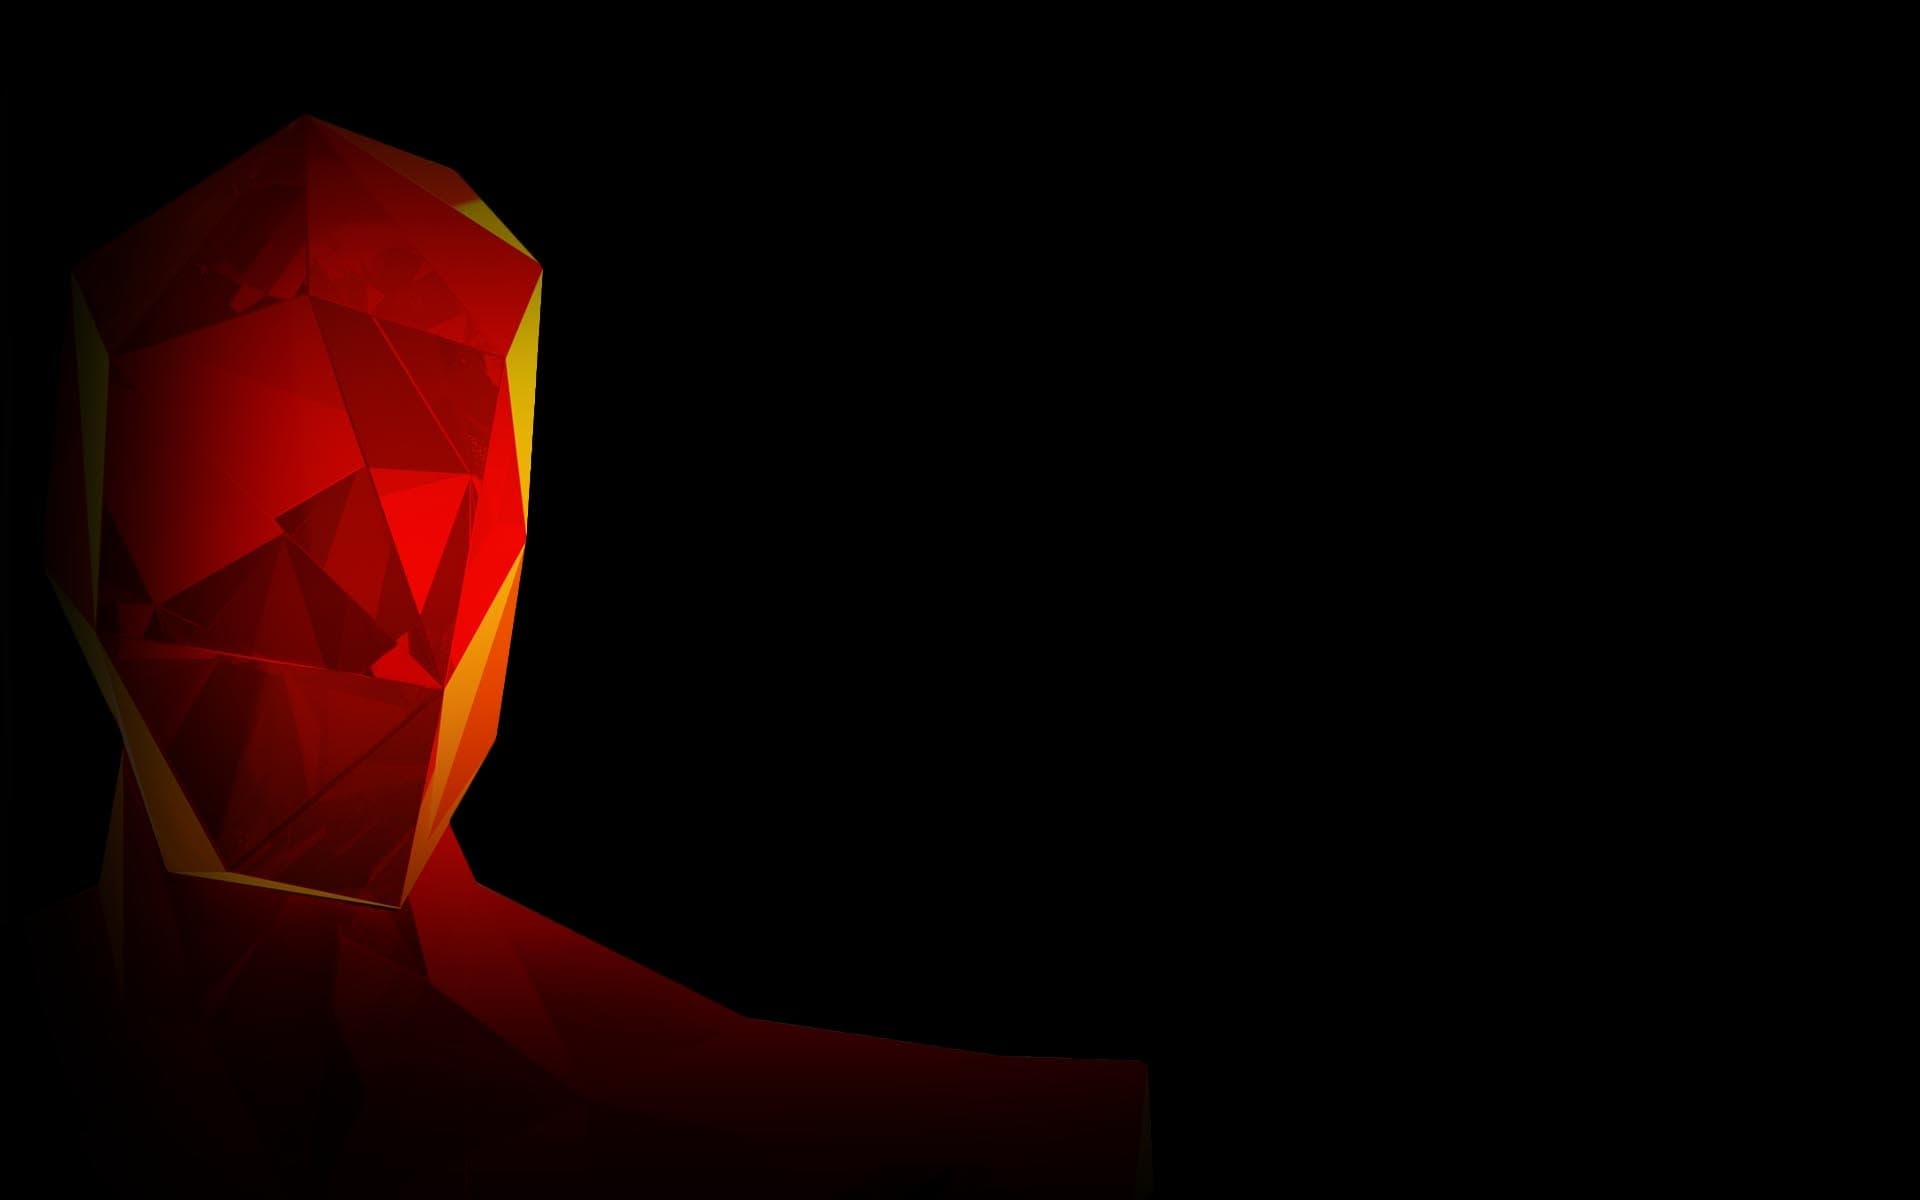 SUPERHOT Desktop wallpaper